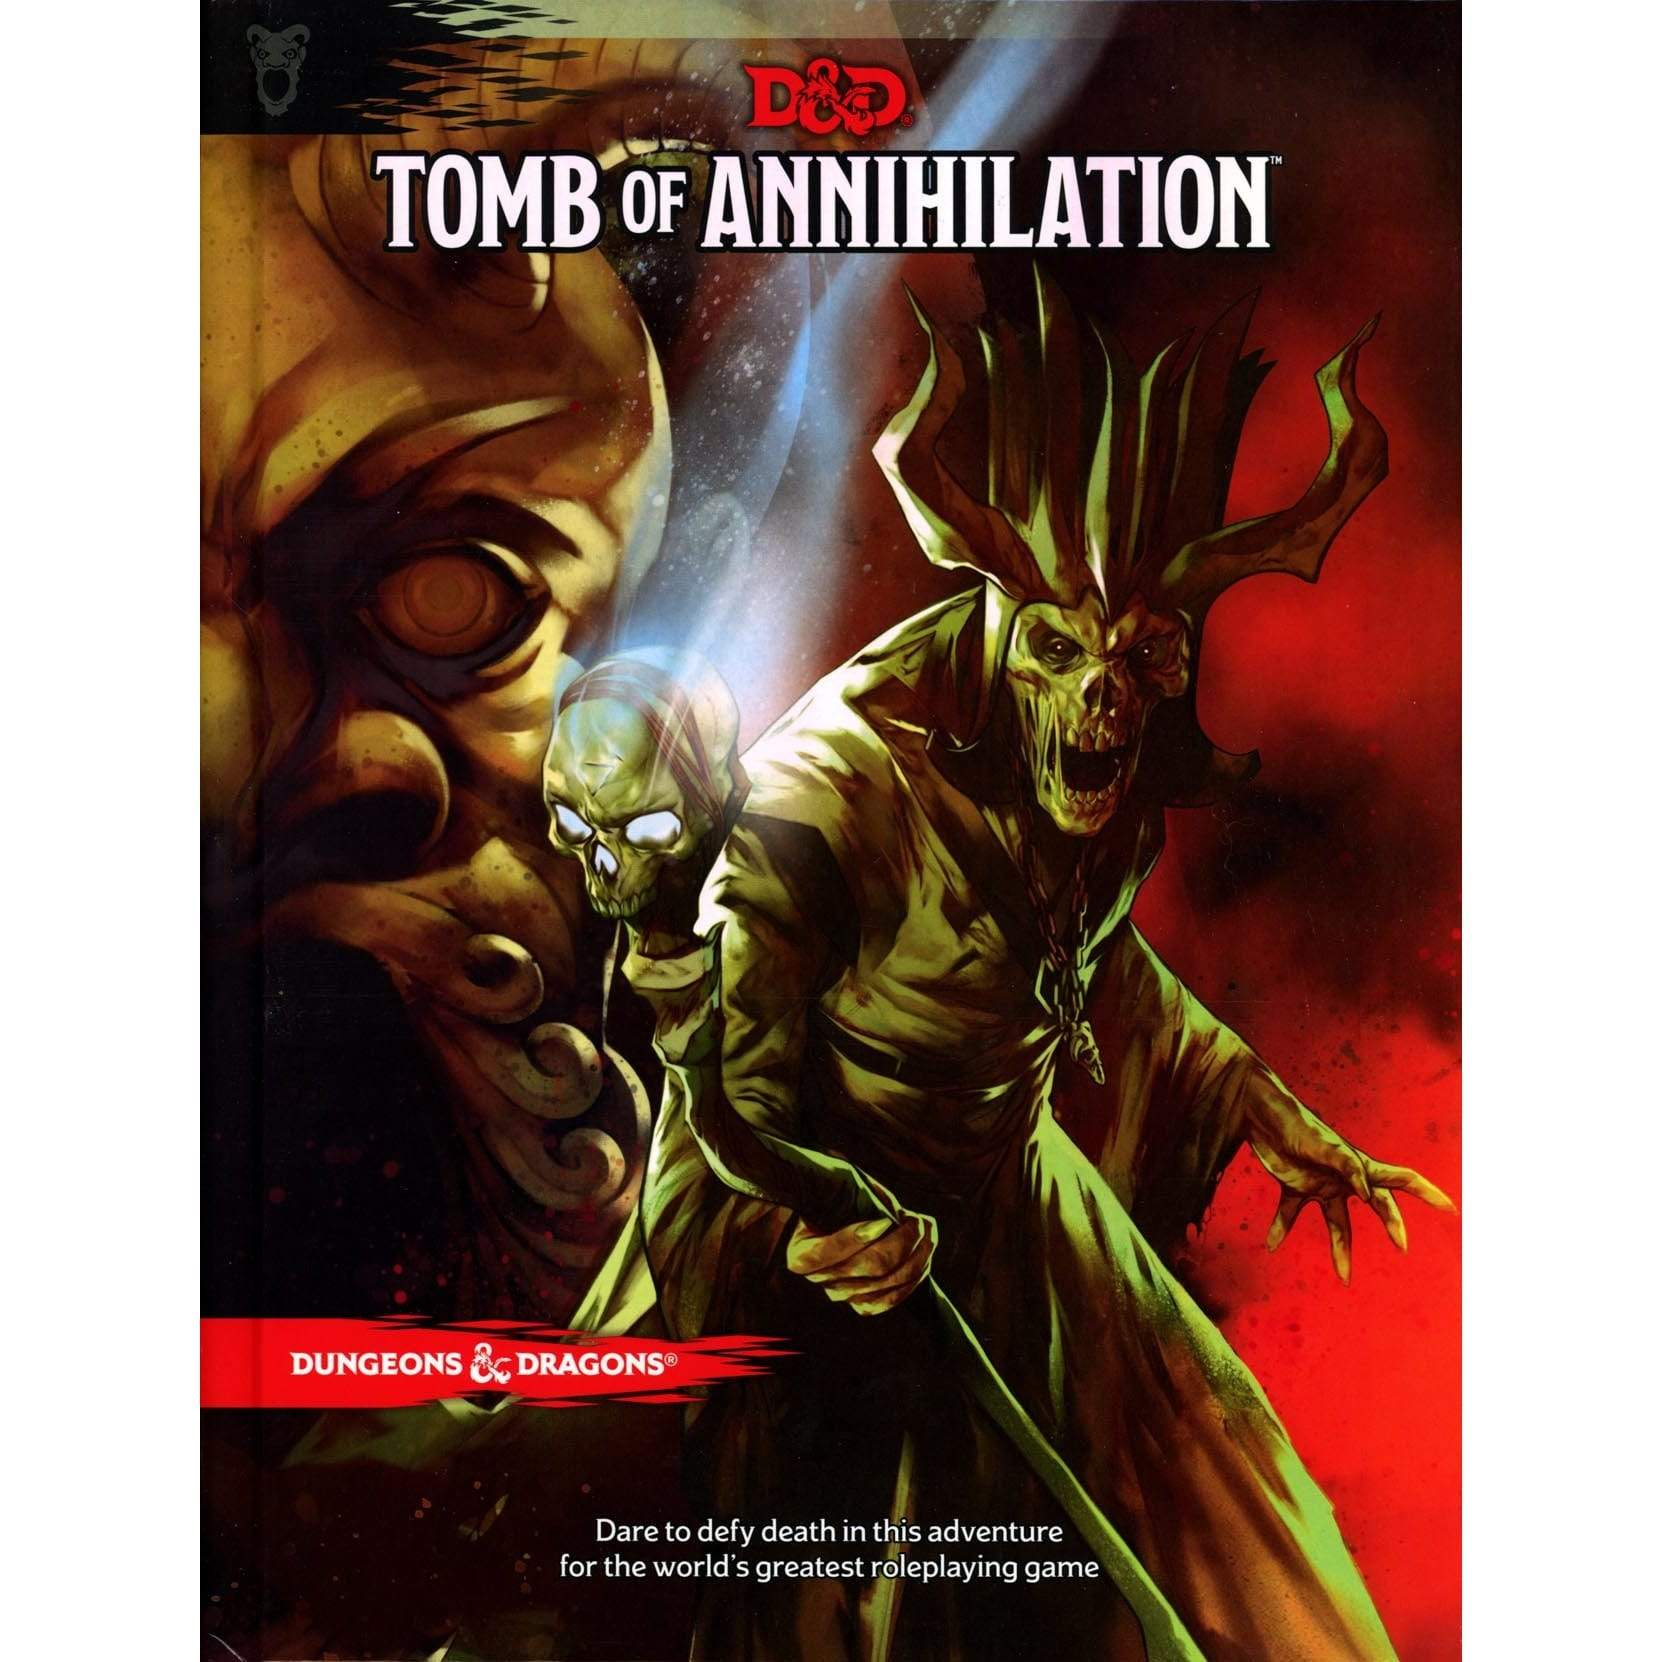 D&D: Tomb Of Annihilation Wizards of the Coast Board Games